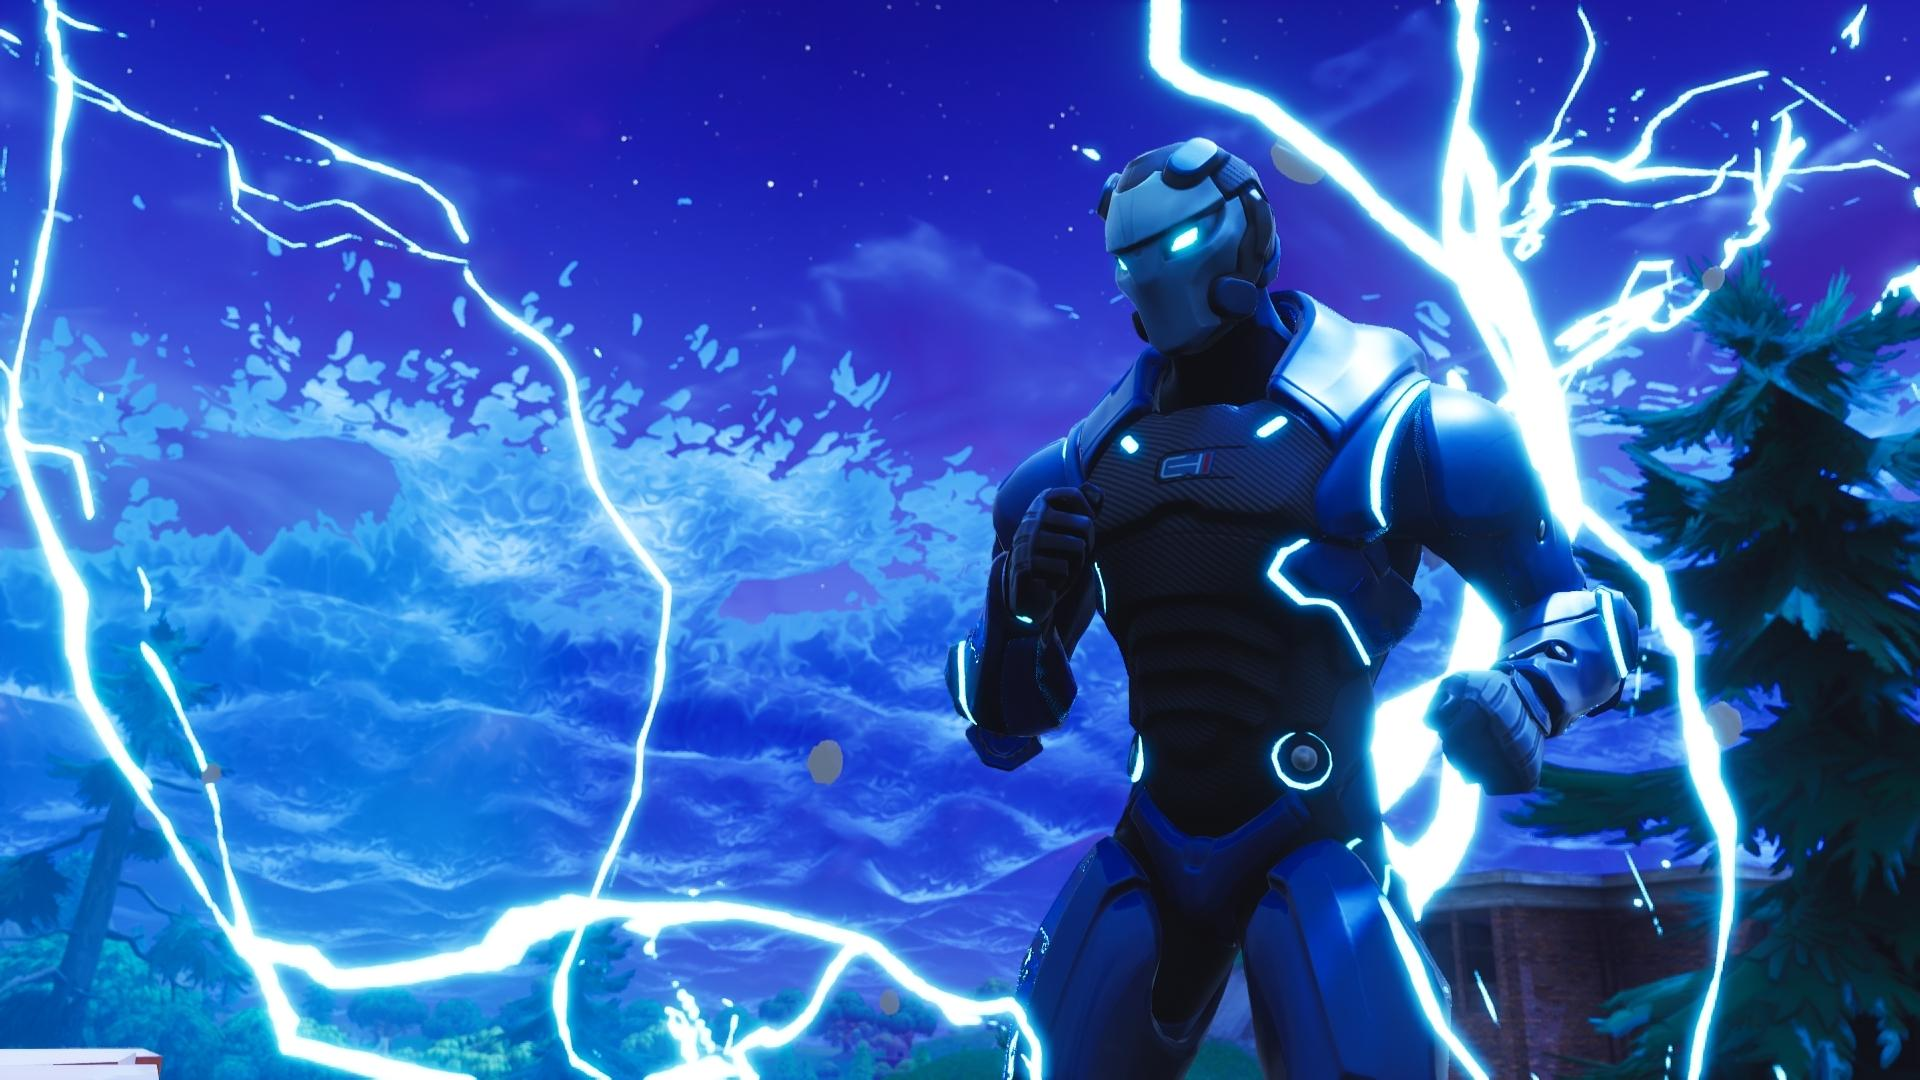 Fortnite Cool Carbide Wallpapers Top Free Fortnite Cool Carbide Backgrounds Wallpaperaccess